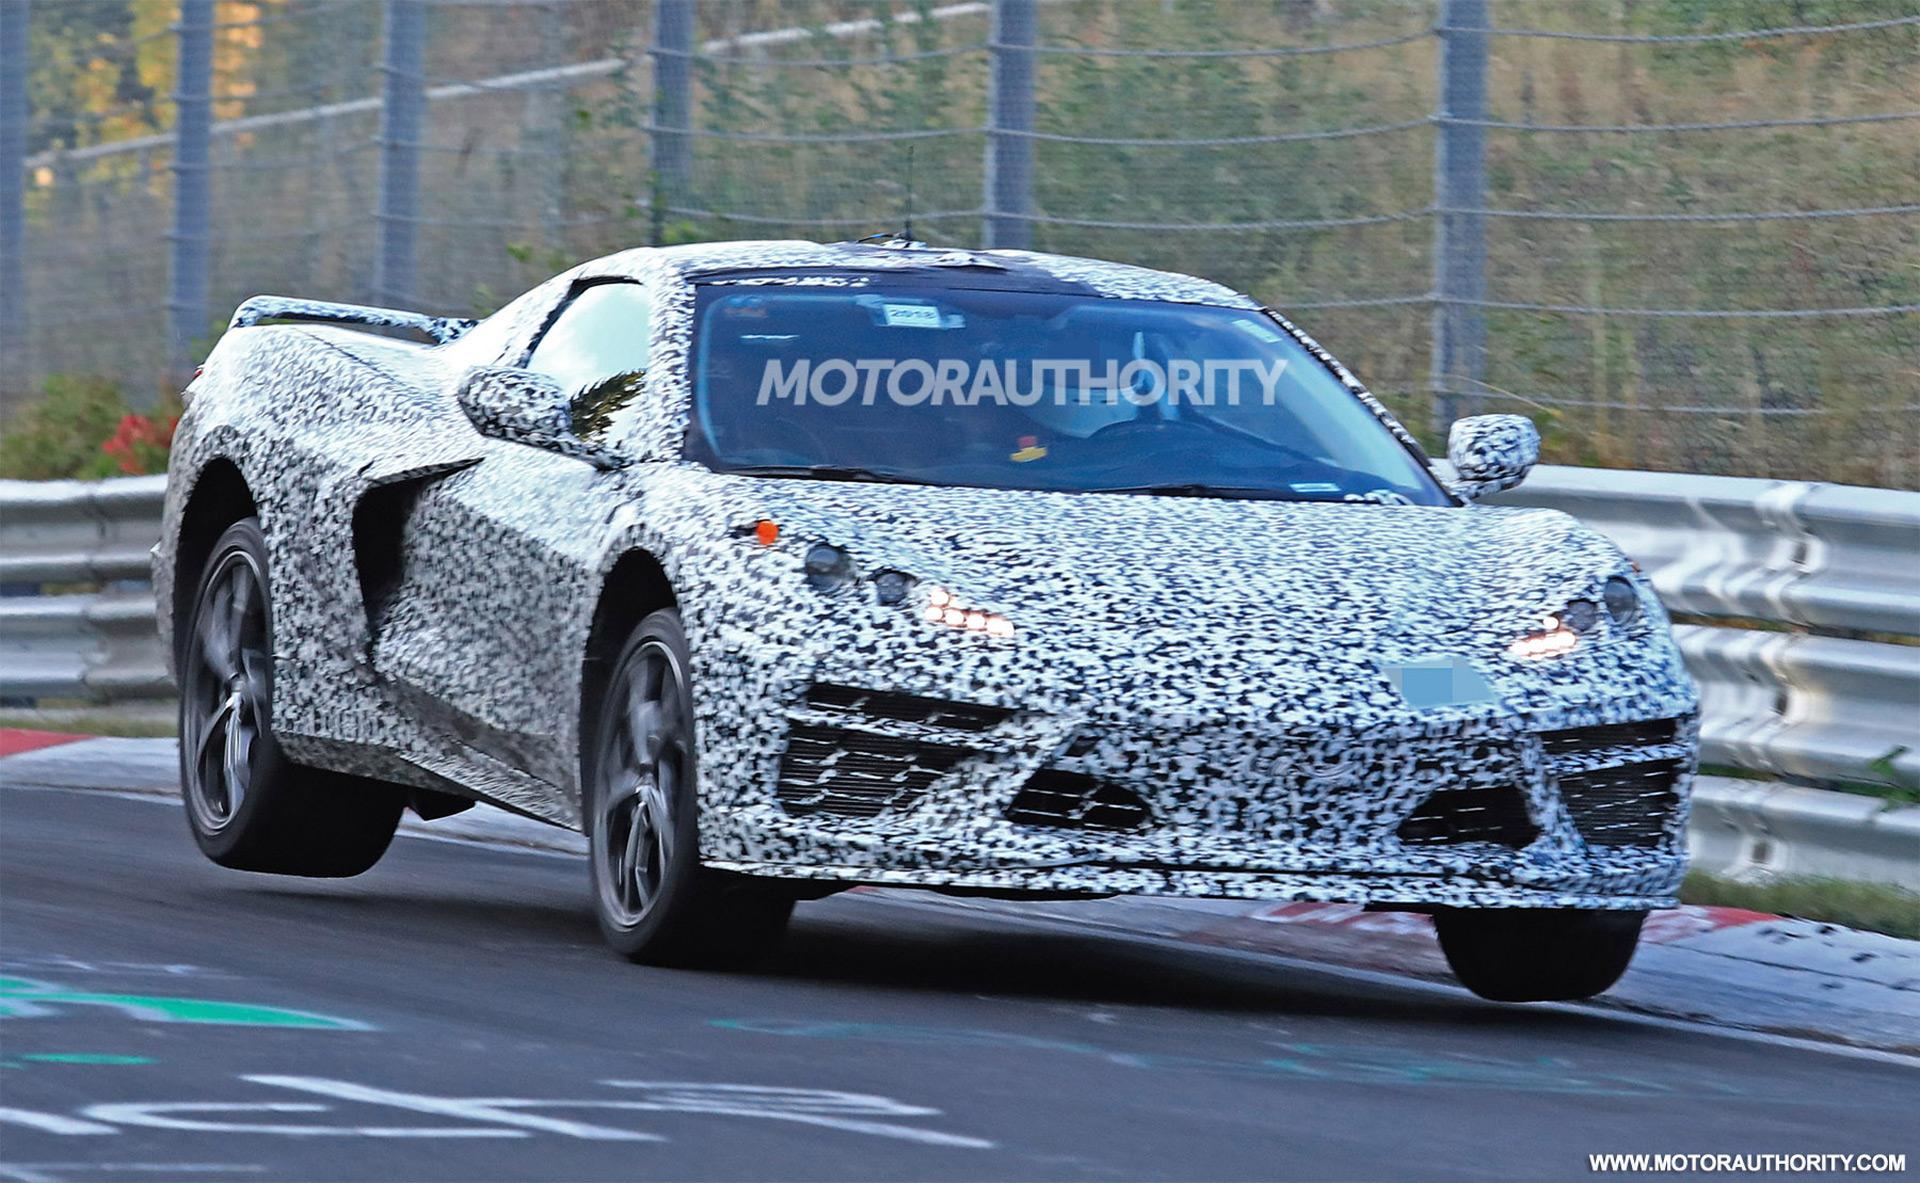 2020 Chevrolet Corvette C8 Spy Shots And Video